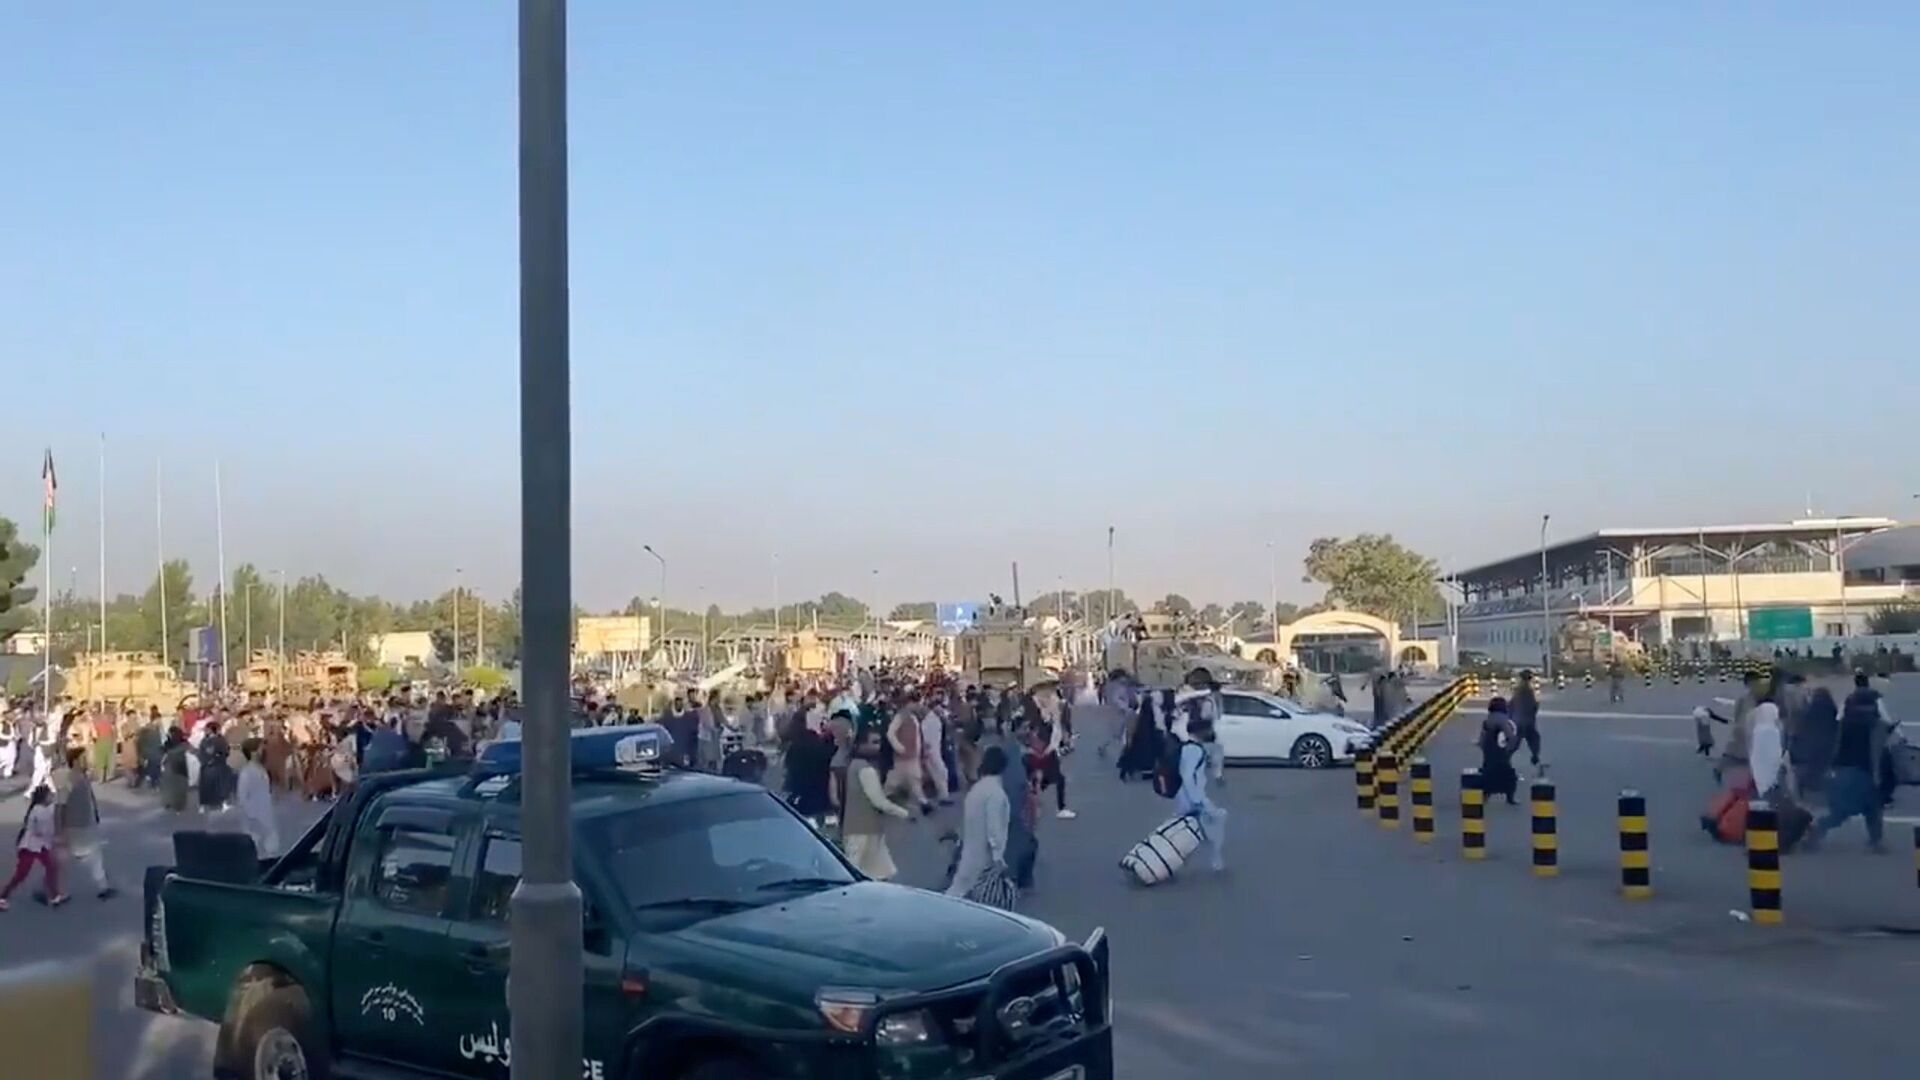 A horde of people run towards the Kabul Airport Terminal, after Taliban insurgents took control of the presidential palace in Kabul, August 16, 2021, in this still image taken from video obtained from social media - Sputnik International, 1920, 07.09.2021